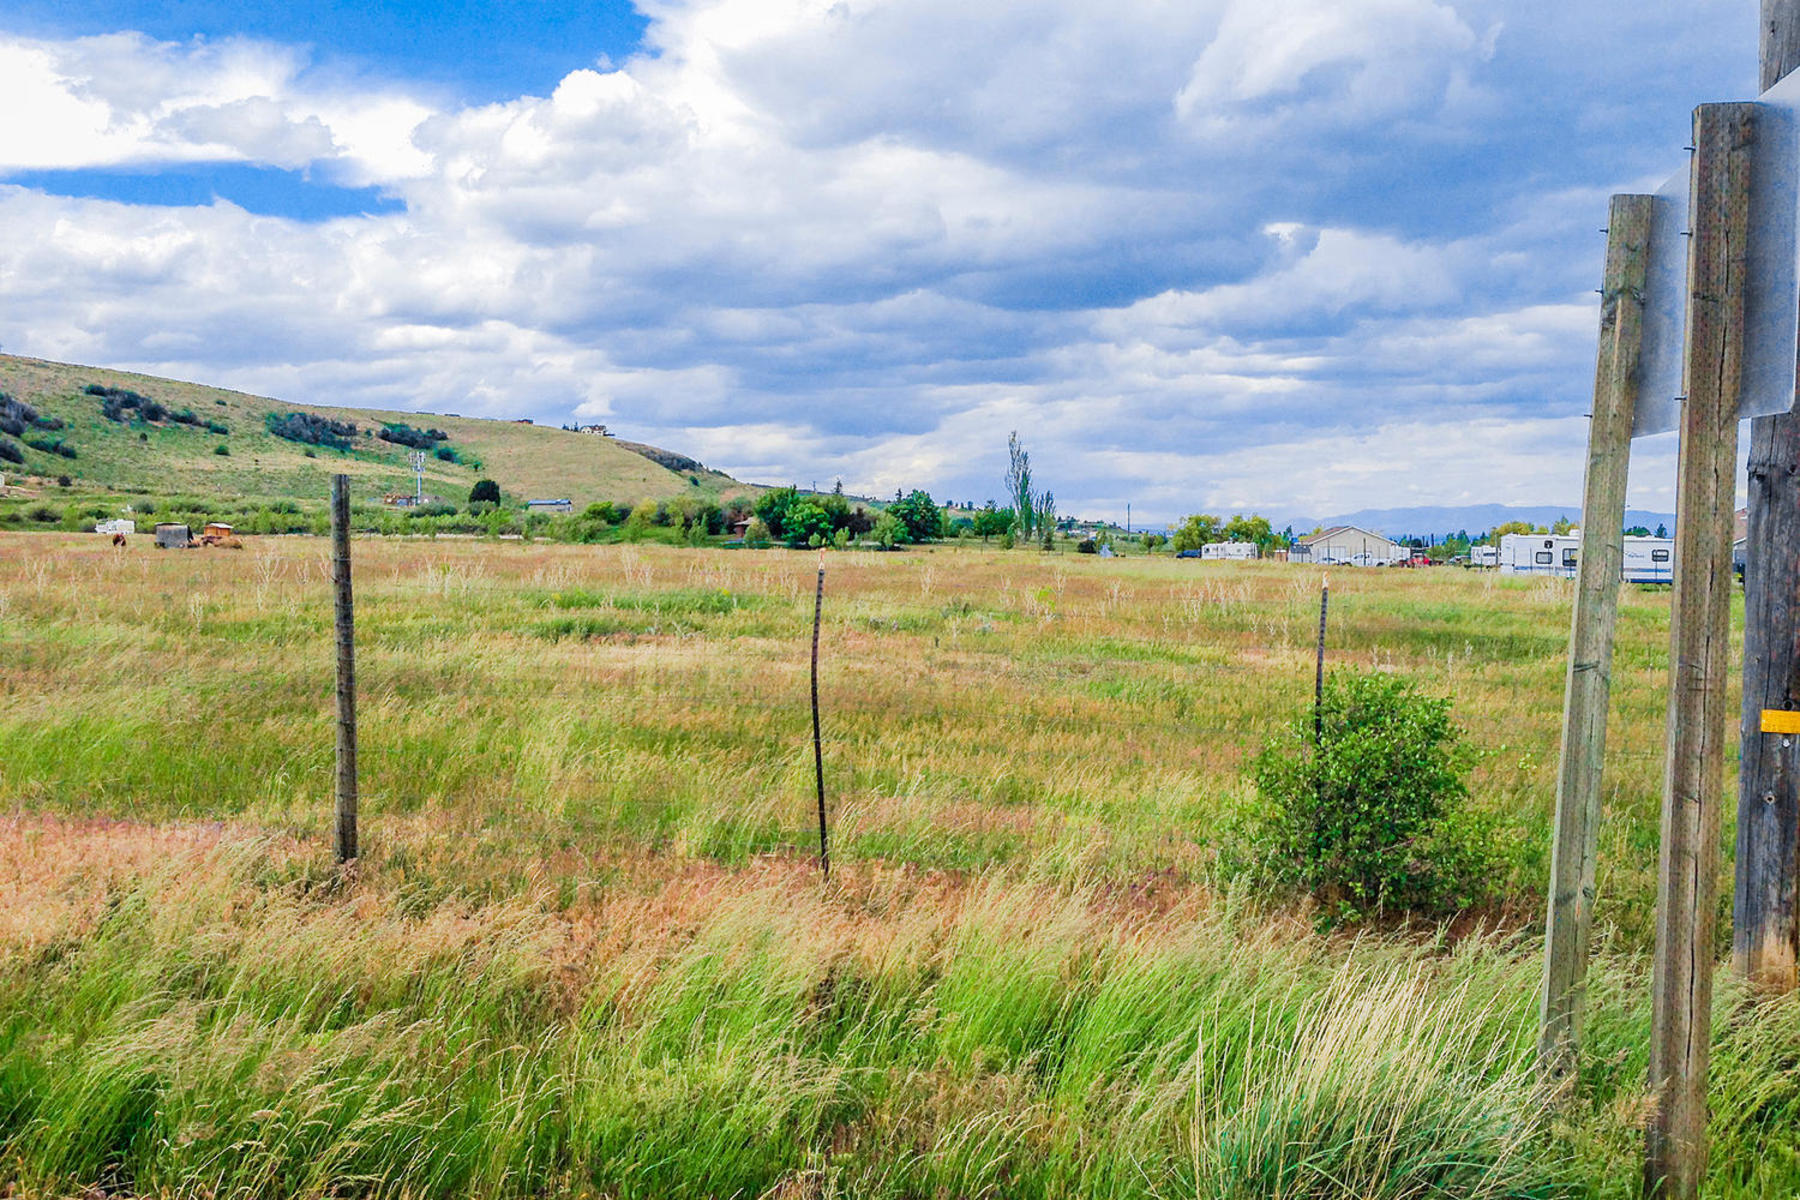 Terreno por un Venta en Amazing Investment Opportunity in the Heart of Garden City 375 W Highway 89 State Rd Lot 2 Garden City, Utah 84028 Estados Unidos